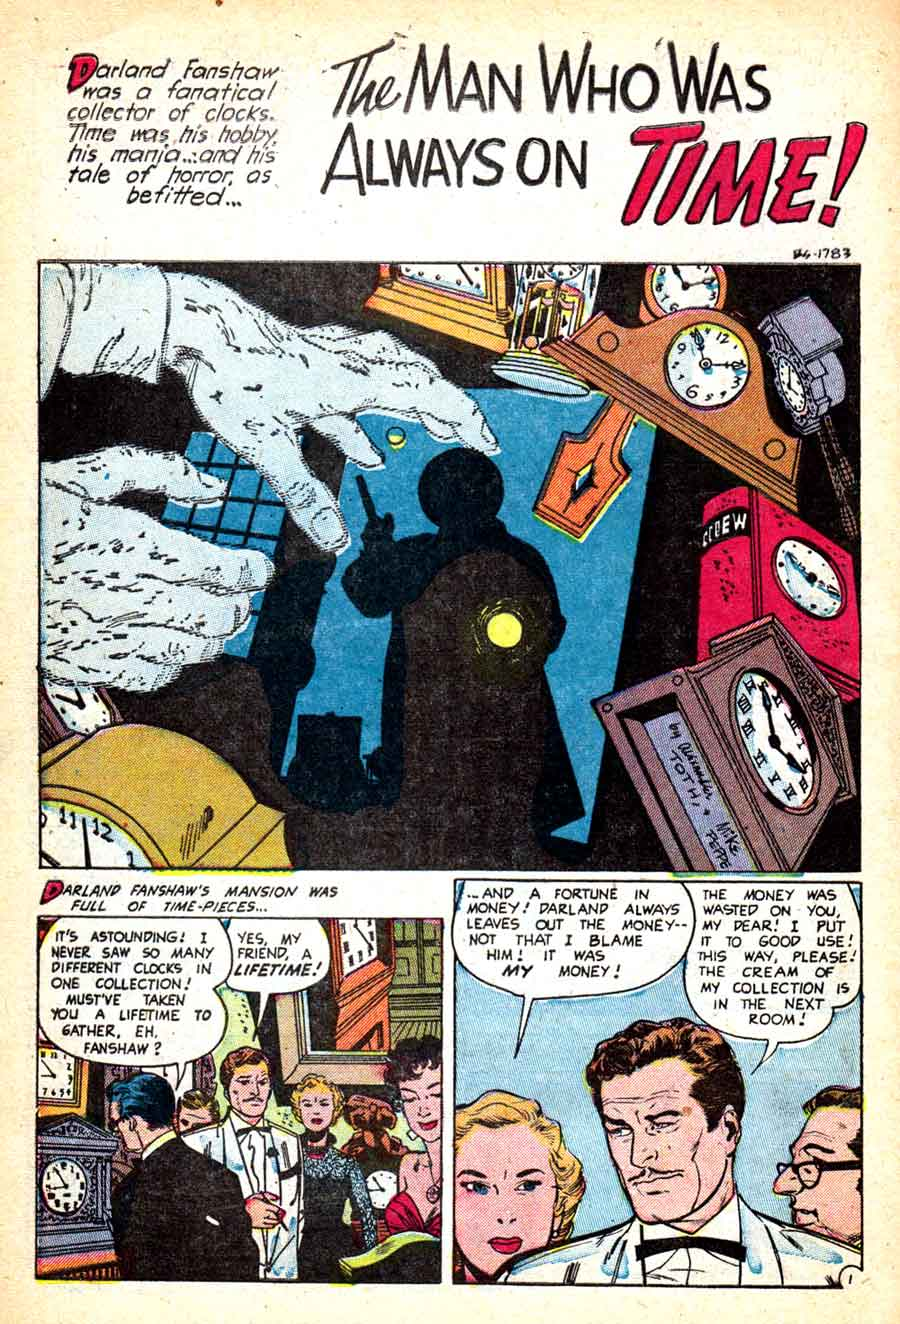 Out of the Shadows #12 Alex Toth 1950s standard horror comic book page art